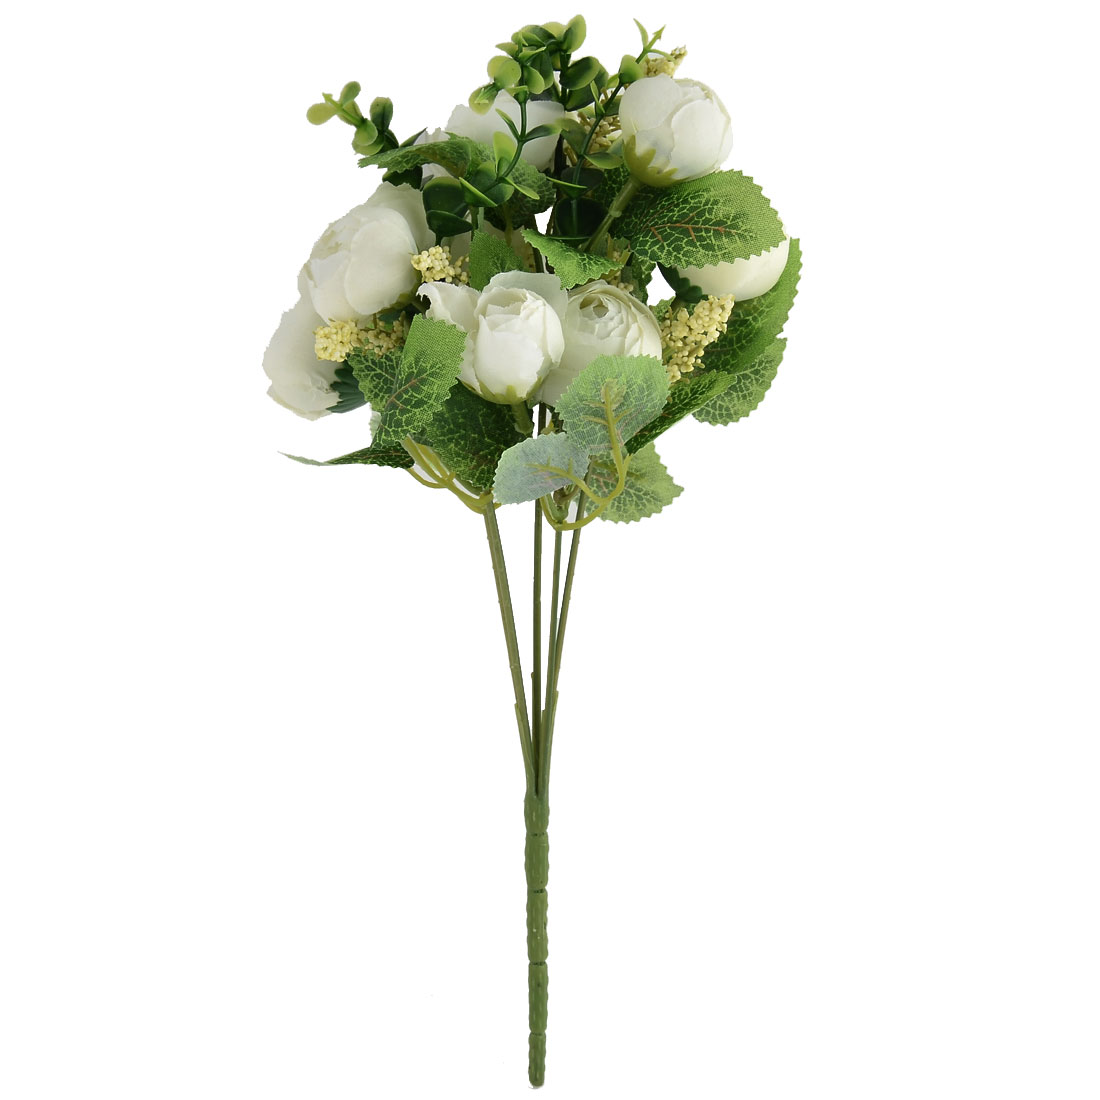 Wedding Banquet Table Decor 10 Heads Camellia Bud Simulation Artificial Bouquet White